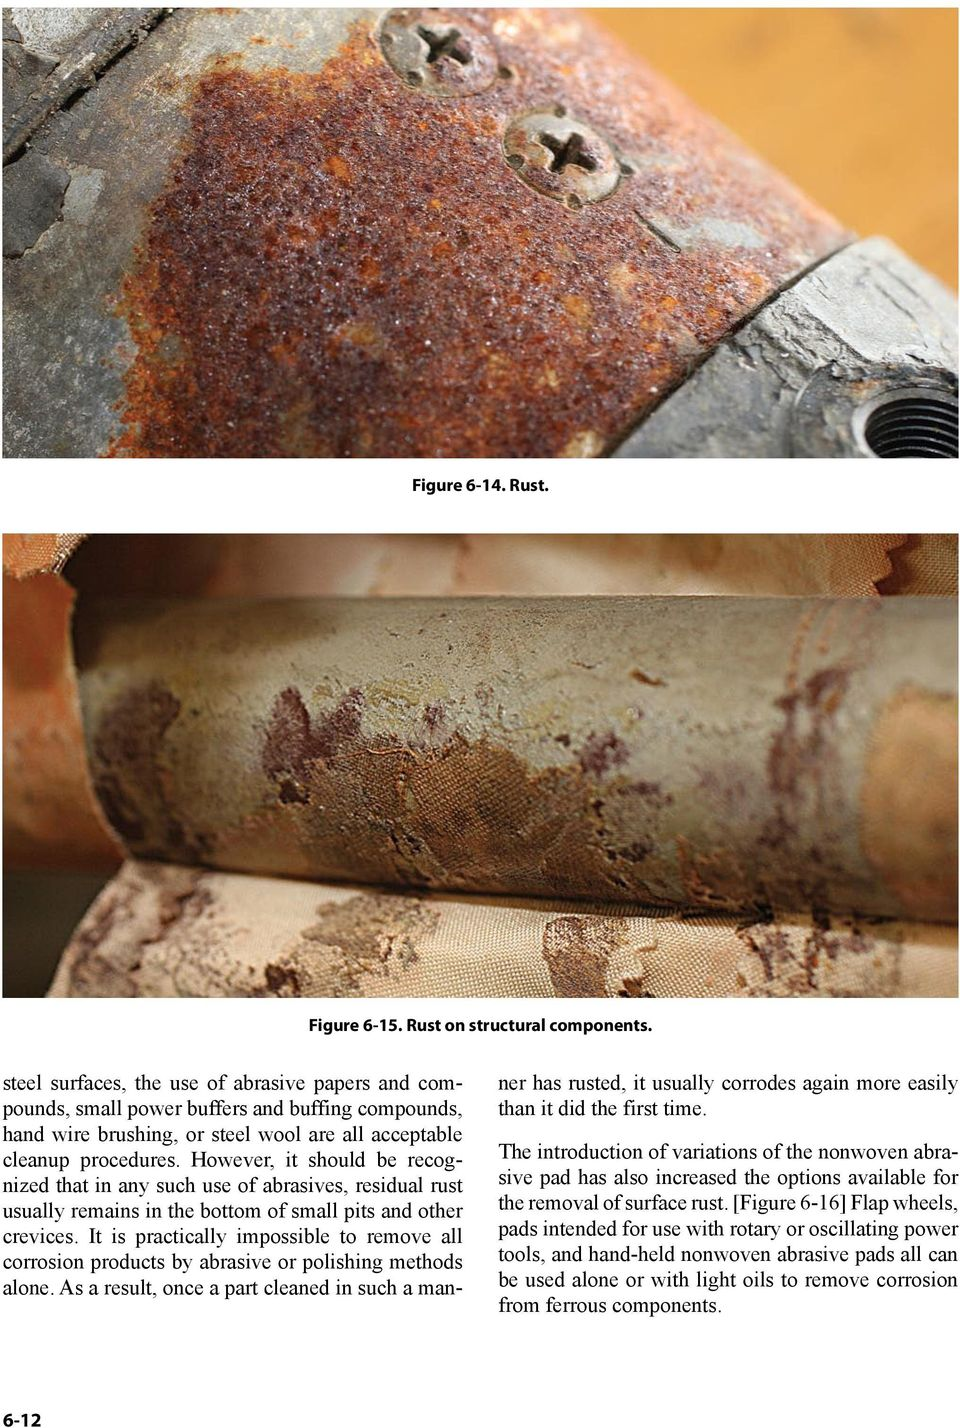 However, it should be recognized that in any such use of abrasives, residual rust usually remains in the bottom of small pits and other crevices.